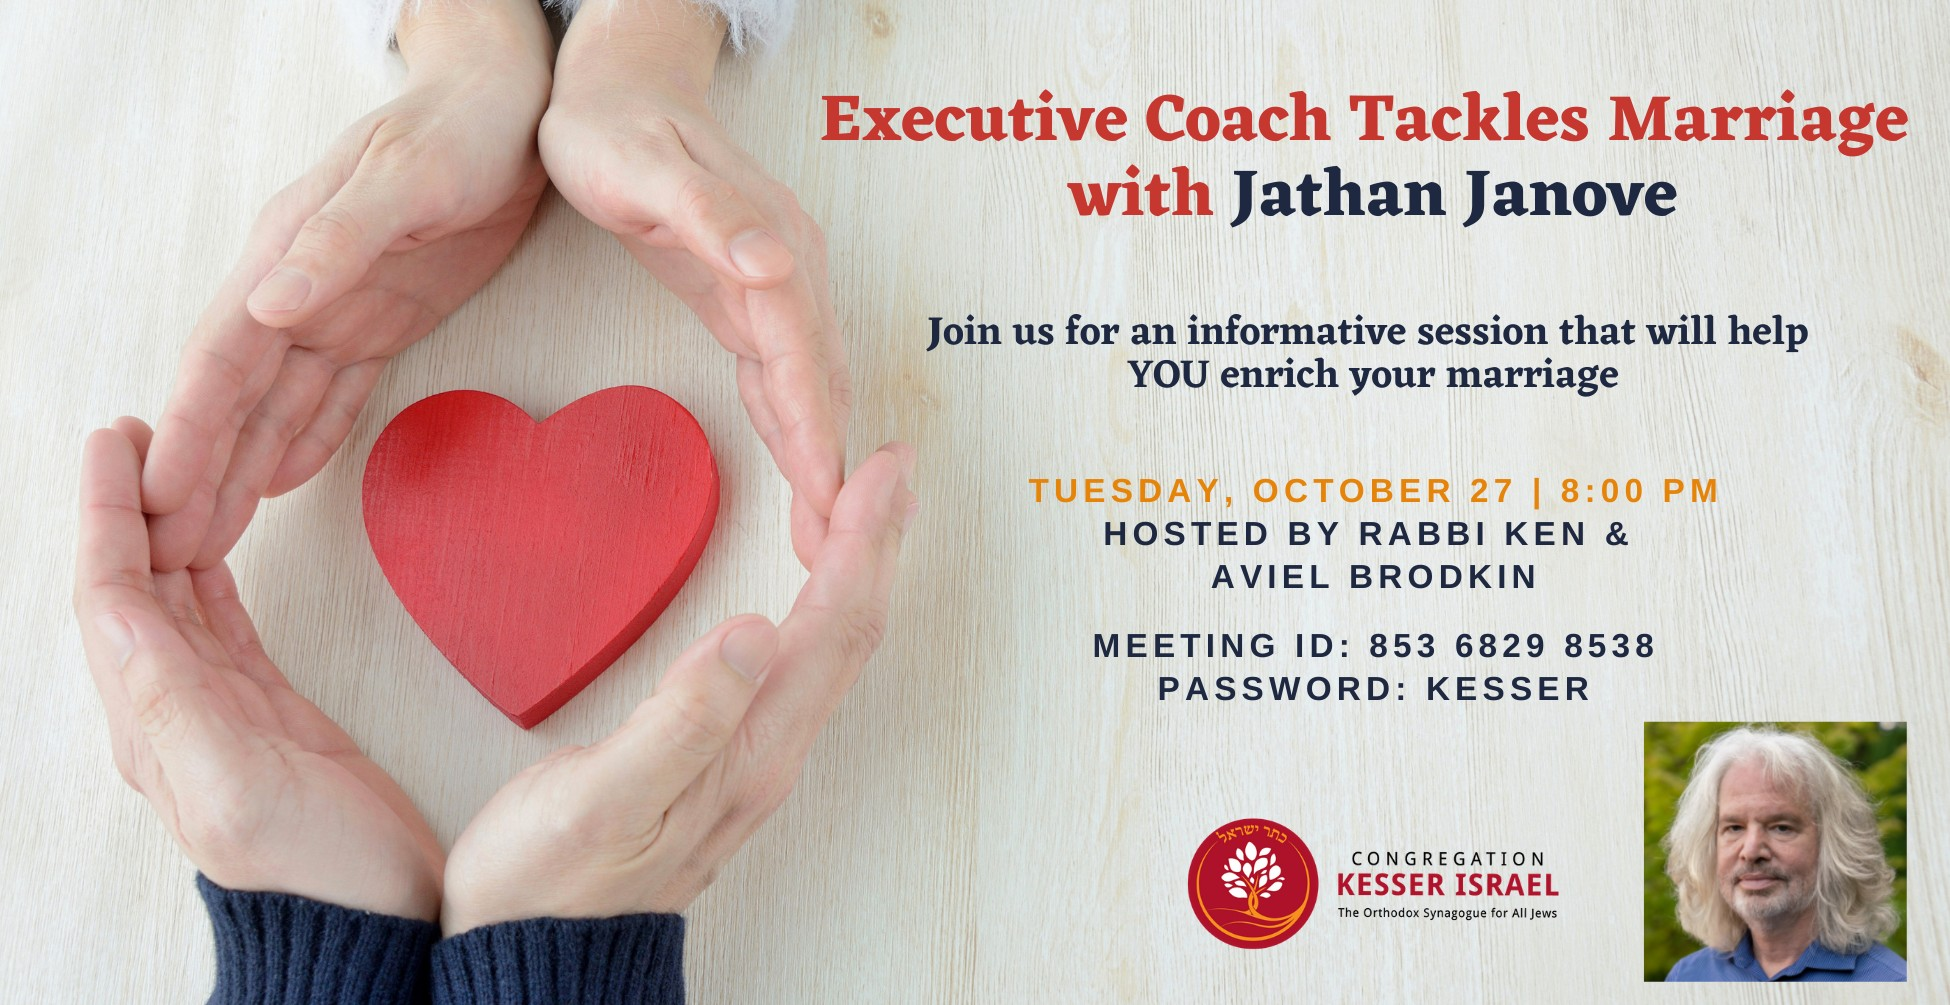 Banner Image for Executive Coach Tackles Marriage  withJathan Janove